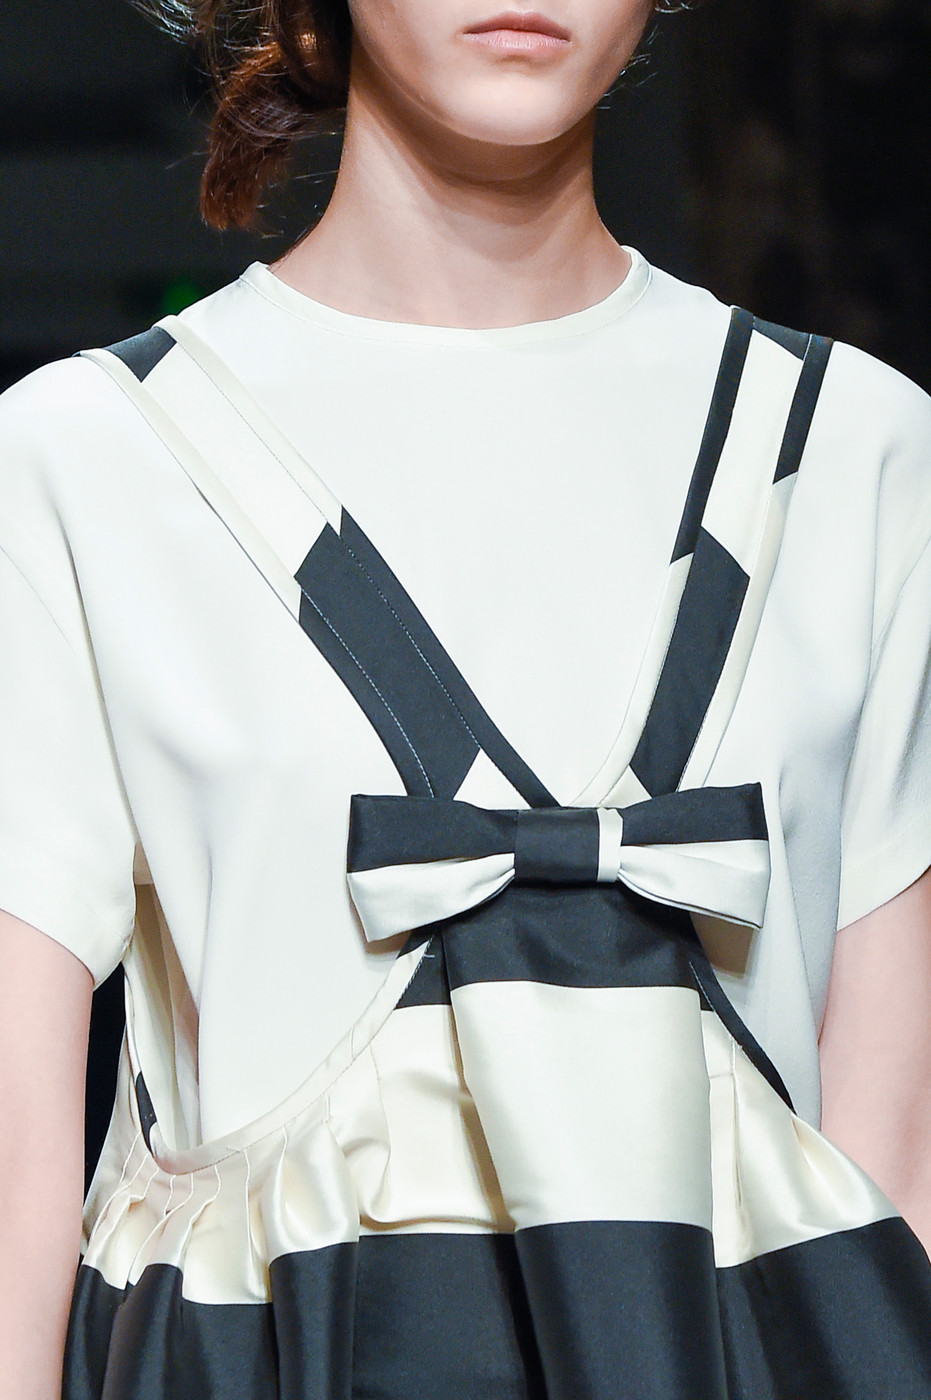 Spring/Summer 2016 trend report / Rochas SS16 / ribbons & bows via www.fashionedbylove.co.uk